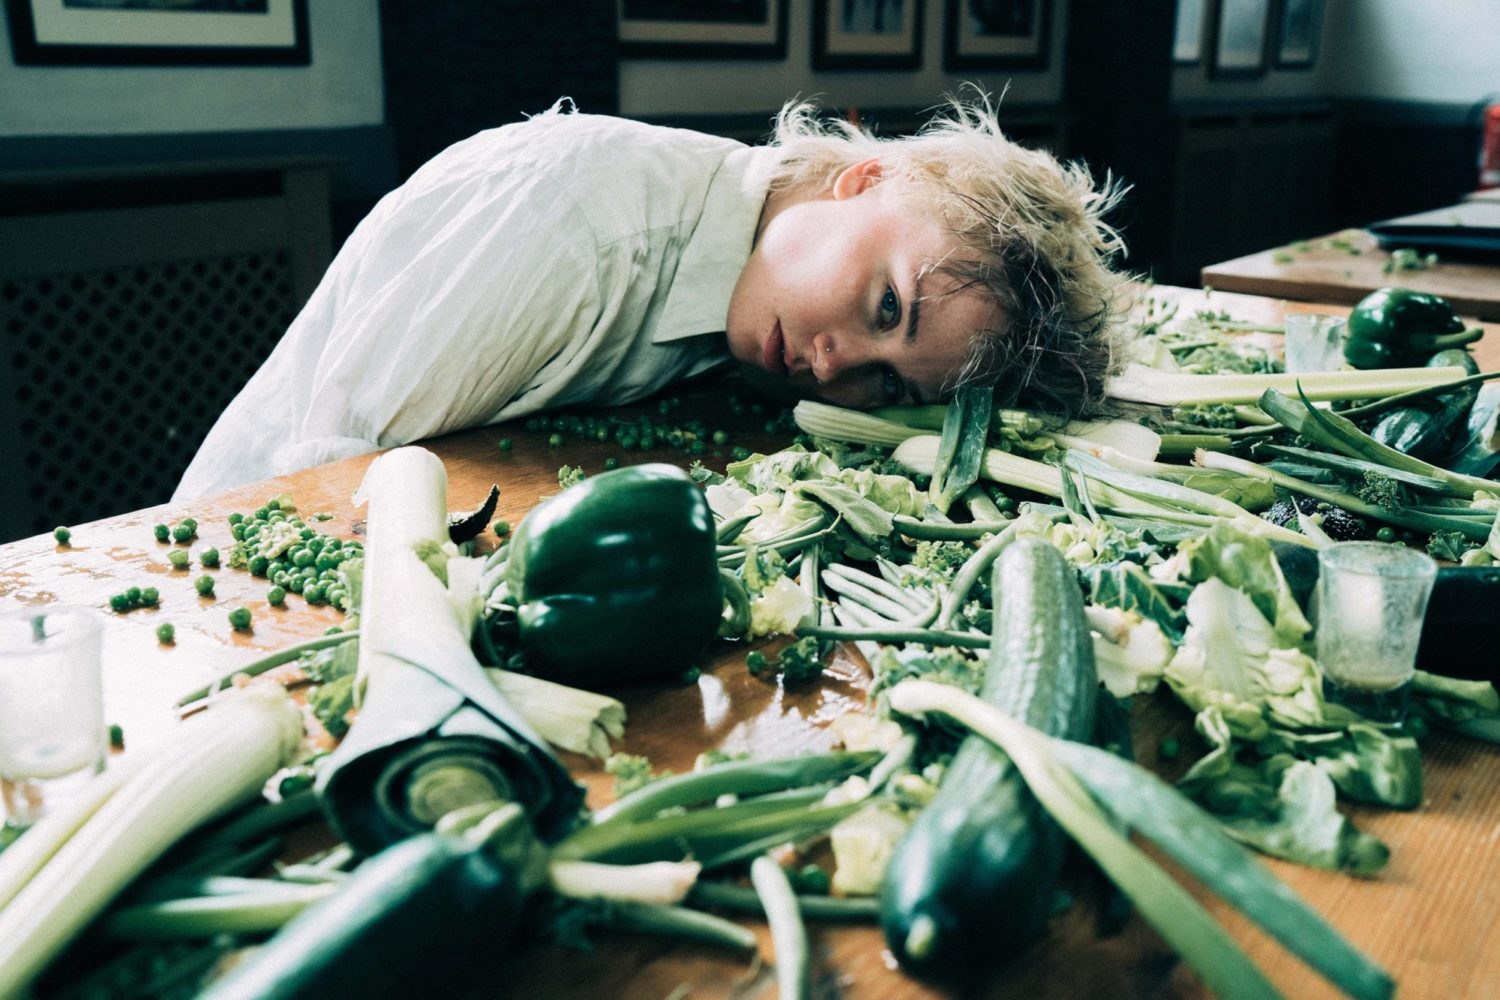 Annabel Allum battles inner conflict in the video for 'Eat Greens'